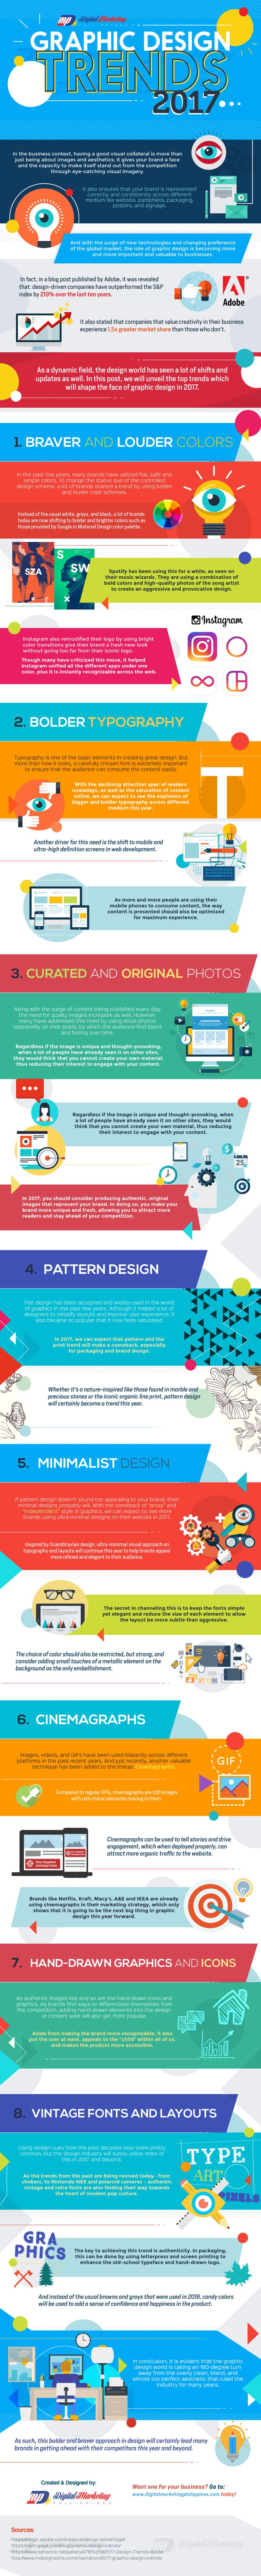 8 Graphic Design Trends to Add Some Oomph to Your 2017 Marketing Campaign [Infographic]